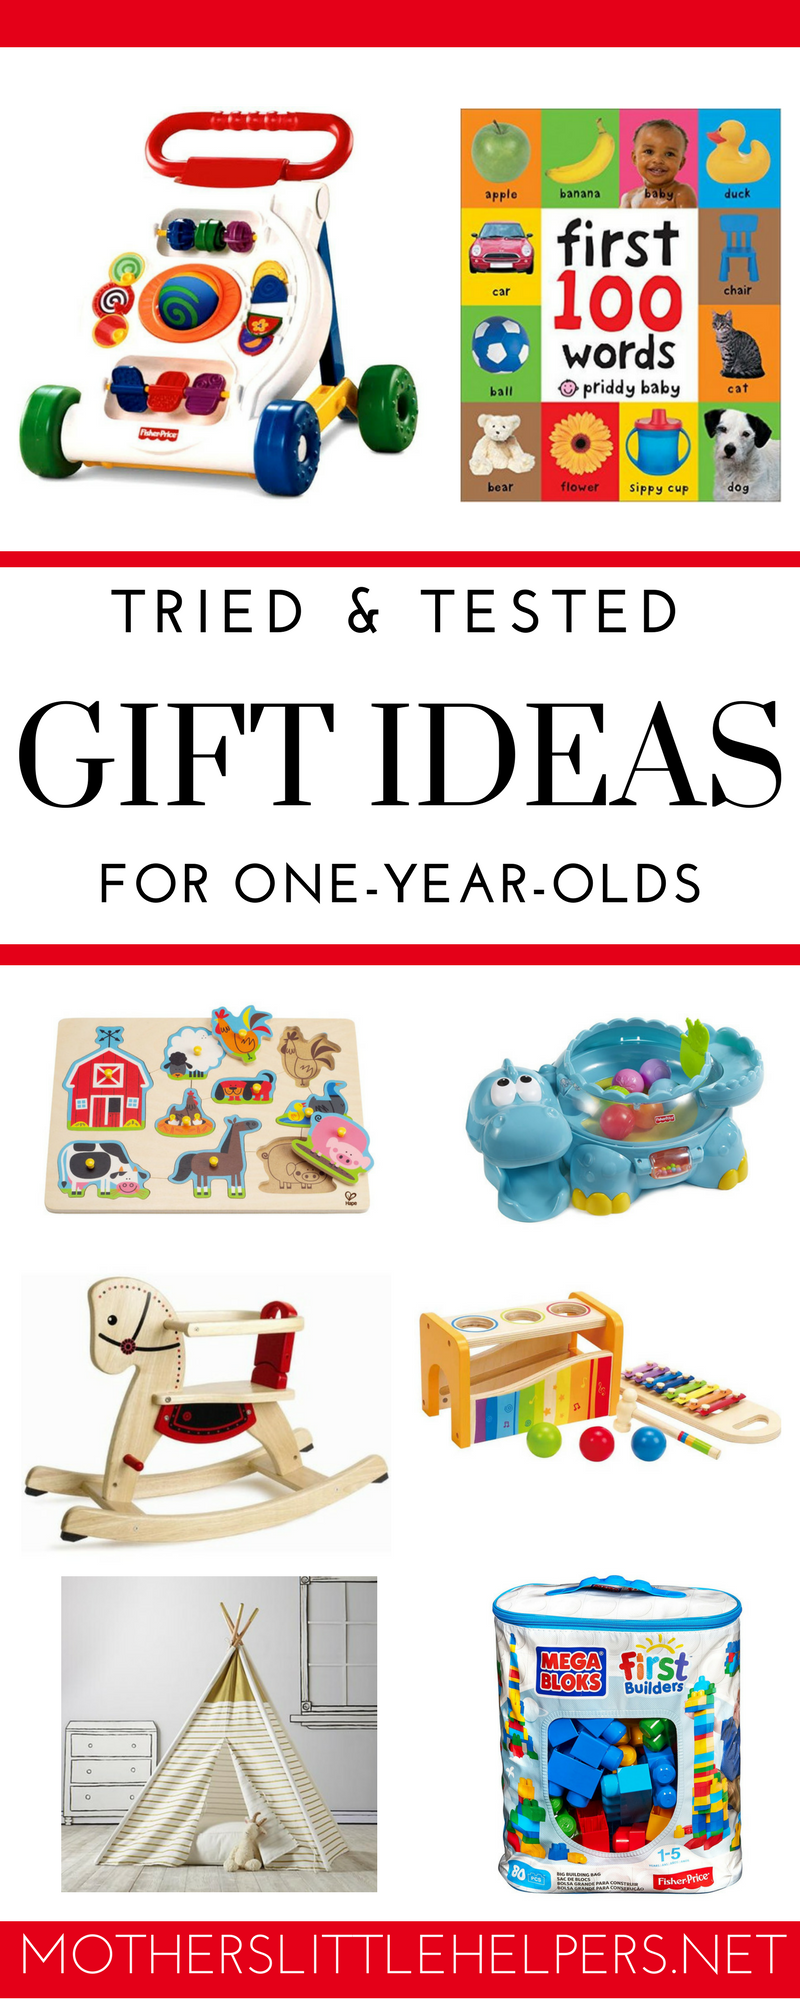 GIFT IDEAS FOR 1 YEAR OLD BABIES – Wondering what to gift a 1 year old? Check out these one year baby gift ideas. Find the best gift for one year old that will last a long time and still be played with over a year later. They also make perfect Christmas, birthday and Easter presents. motherslittlehelpers.net #giftguide #giftsfor1yearold #babygifts #giftsforbaby #babytoys #oneyearoldtoys